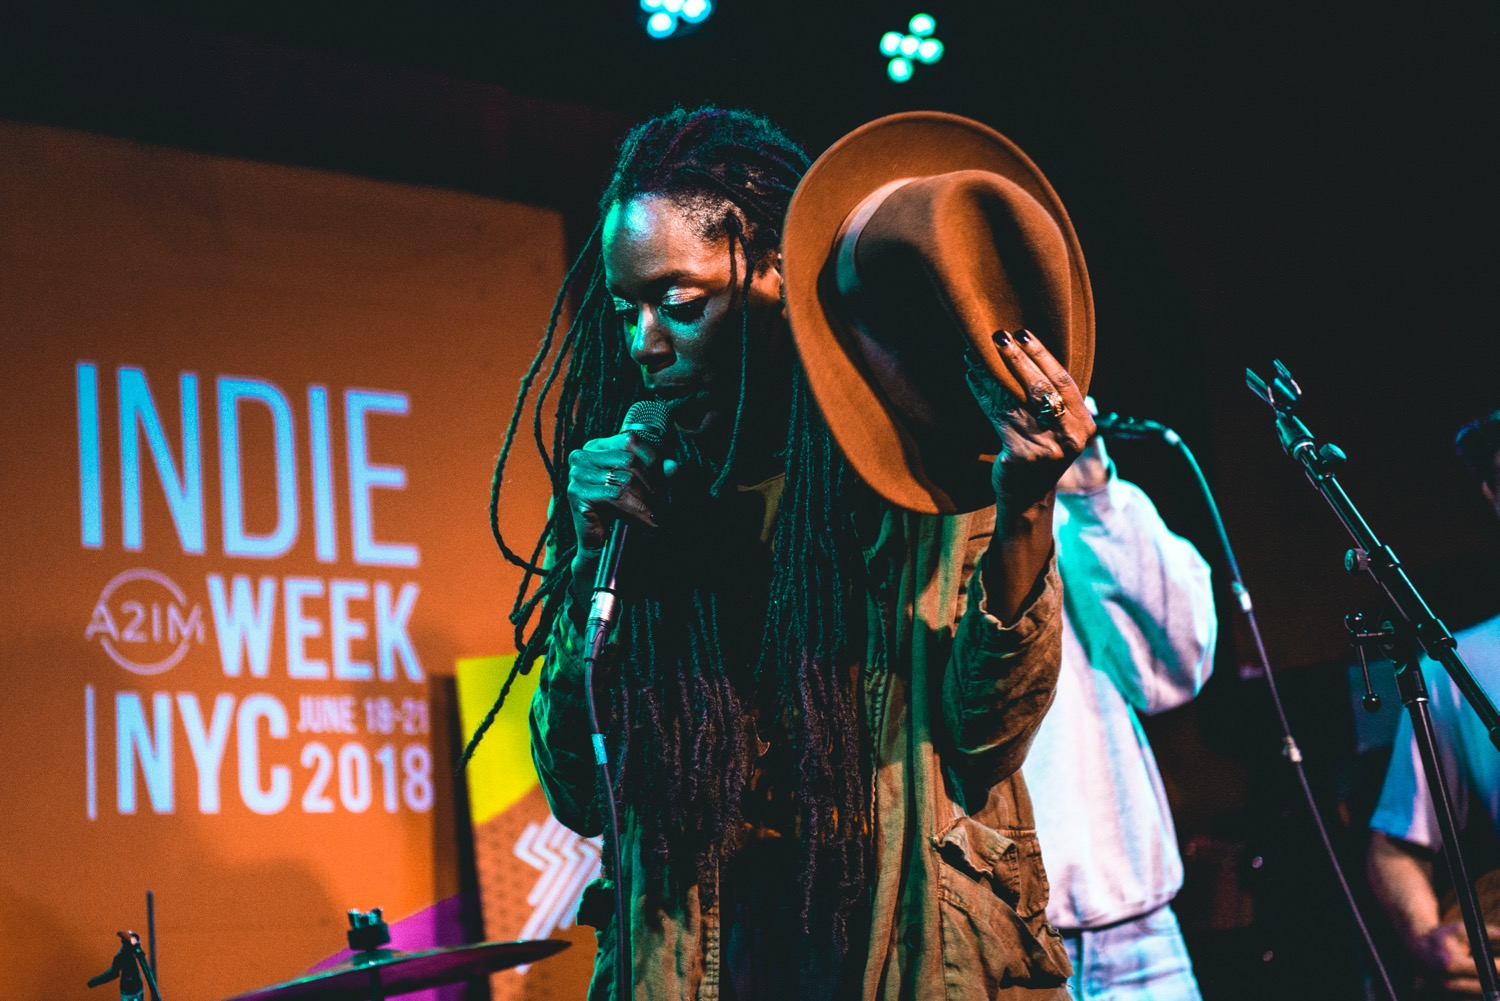 akuanaru reeperbahn2018 cos juliadrummond 2 5 Reeperbahn New York Edition 2018 Photo Gallery: HAERTS, Jade Bird, Akua Naru, Surma